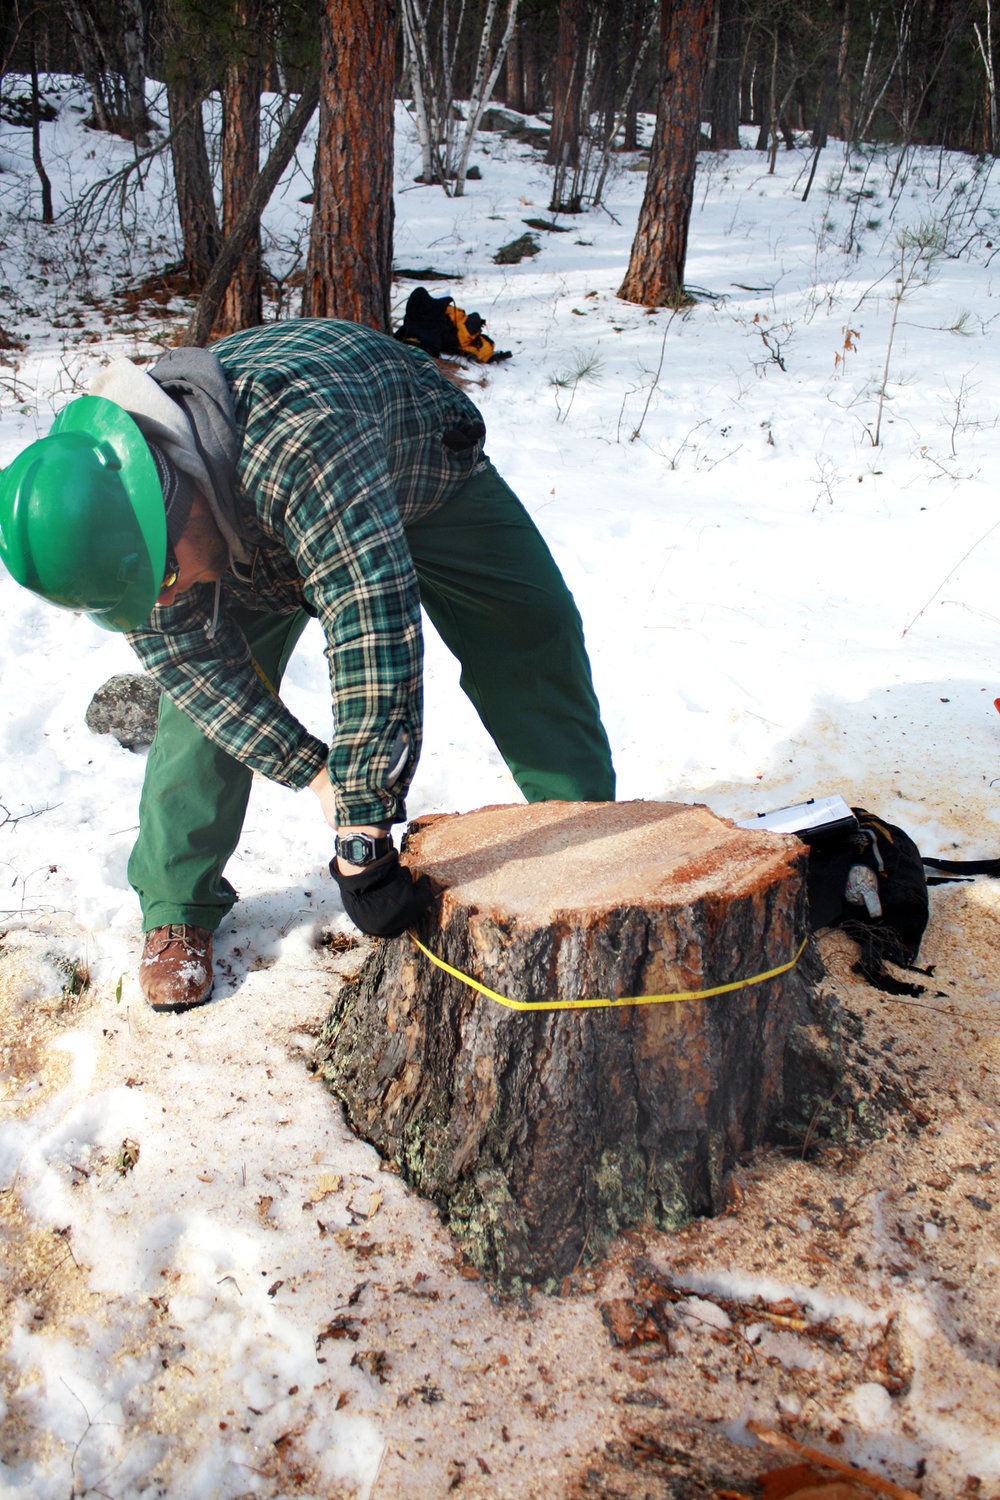 A worker measures the stump to determine the payment for each tree cut based on size. Photo provided by Dave Heck.